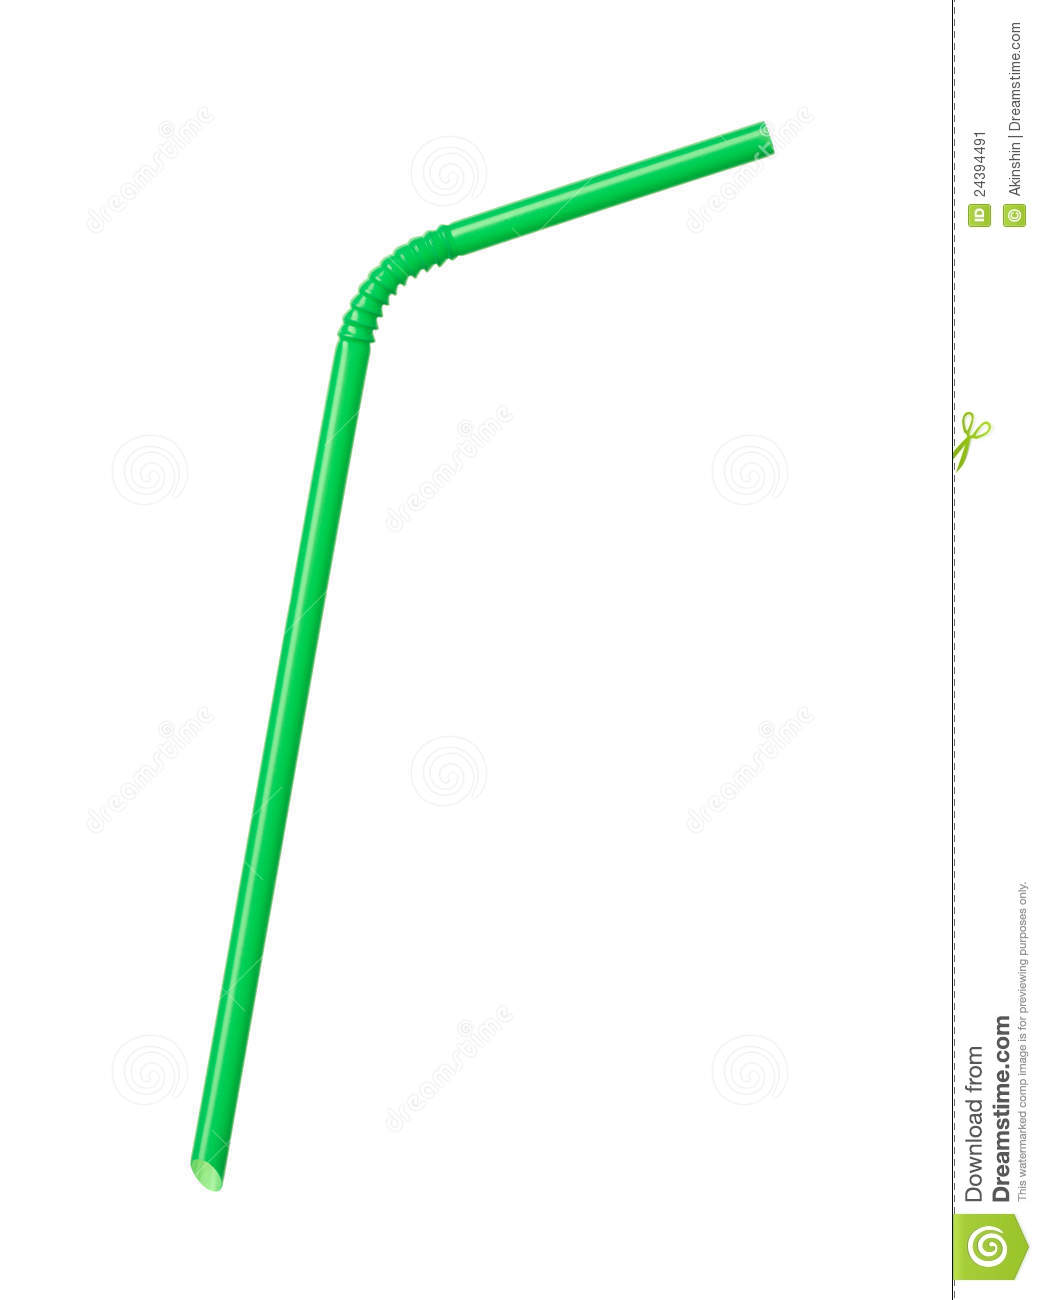 Bendy Straw Clipart.